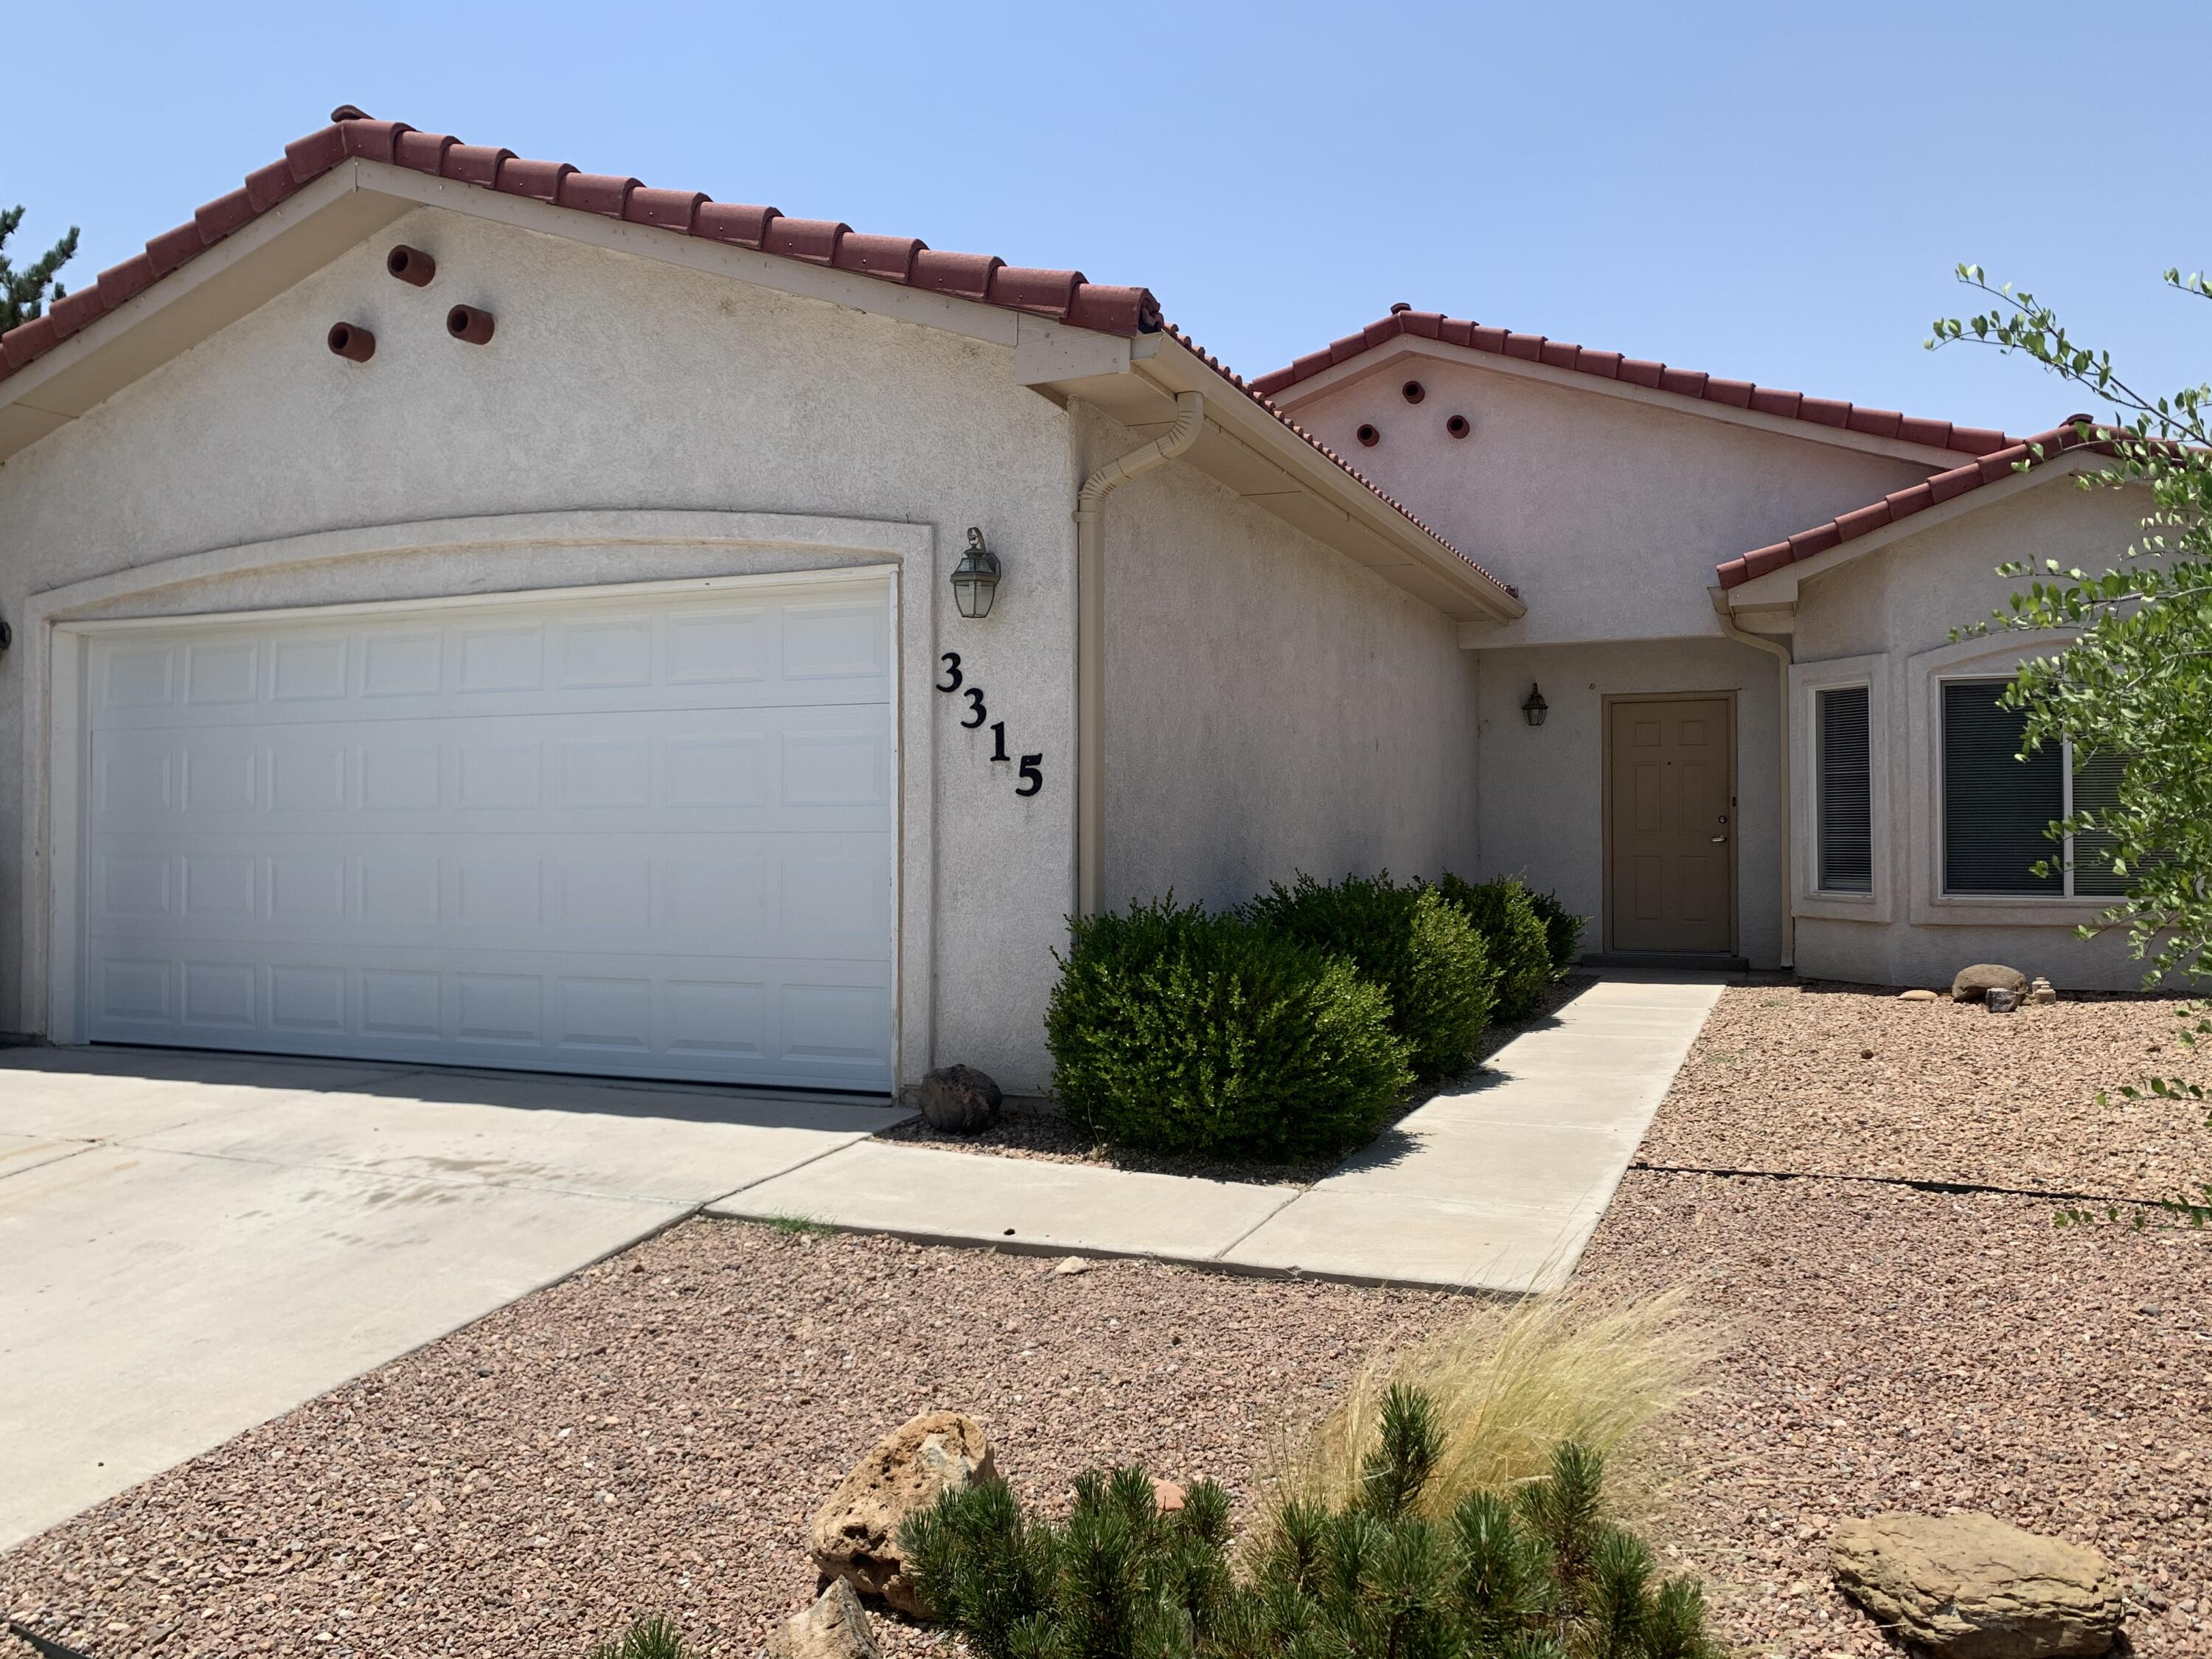 Open floor plan with nice long entryway that leads to great room with living room and kitchen. Lots of room for bar stool seating.  Dining area with lots of windows. Master bedroom has walk-in closet. Beautiful tile roof. Near community park.